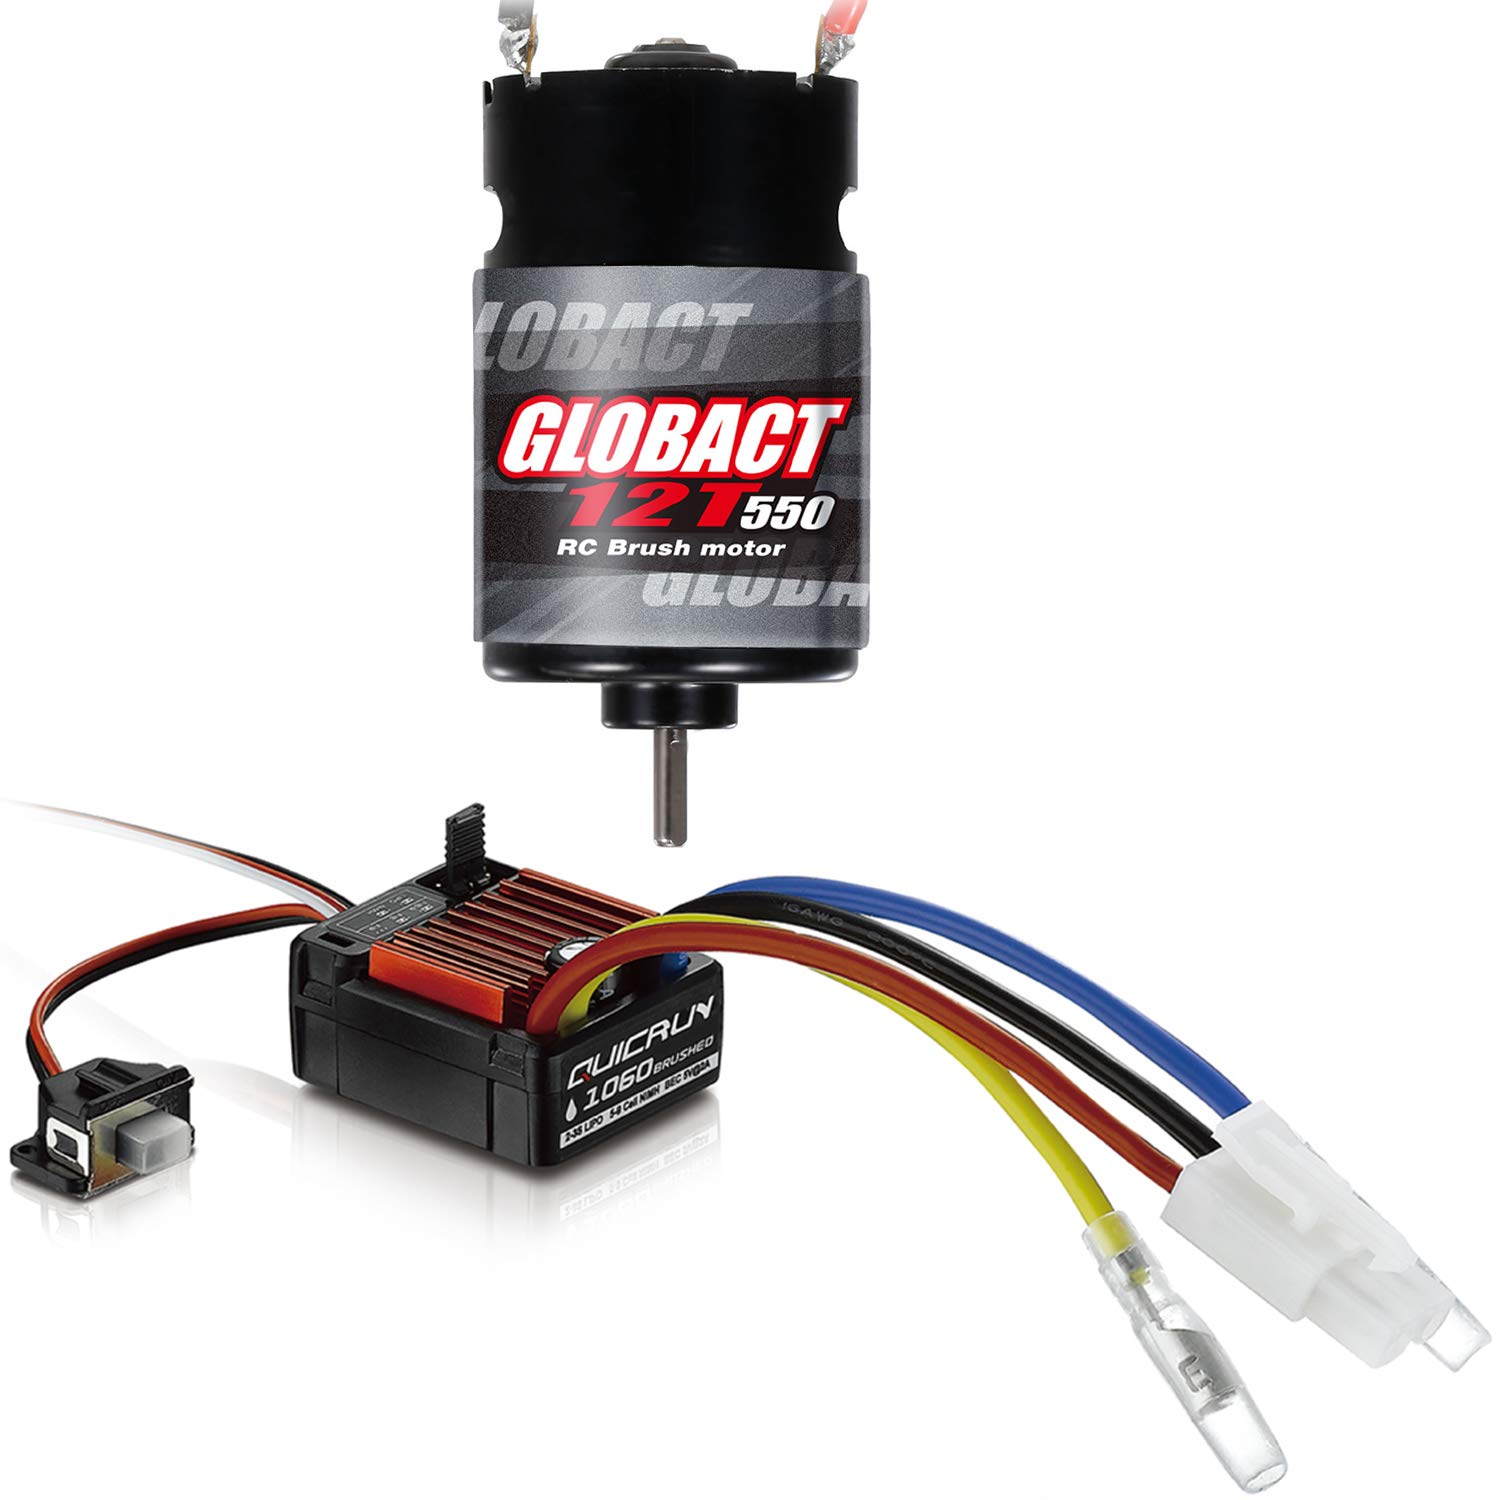 Hobbywing QuicRun WP 1060 60A Brushed ESC and Globact 550 12